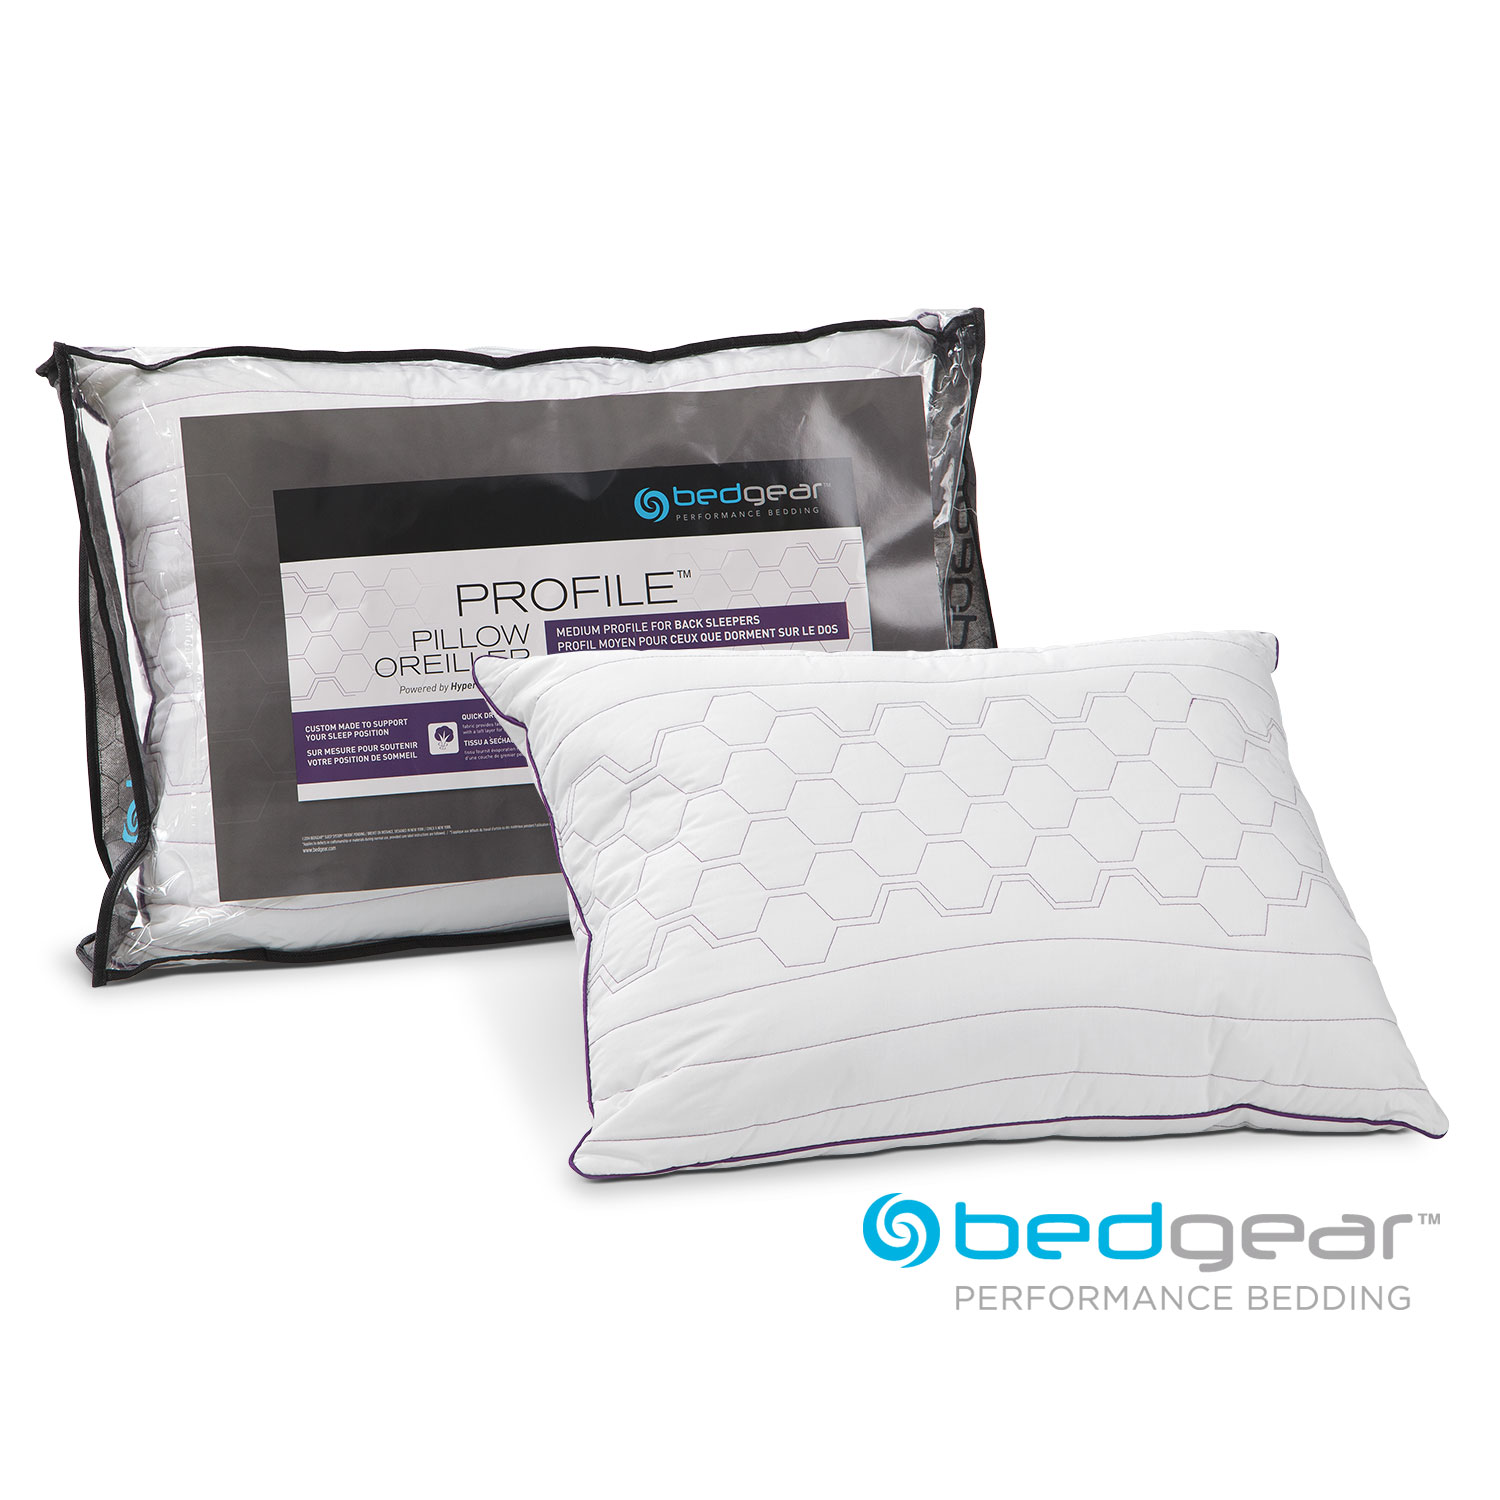 [Queen Profile Pillow for Back Sleepers]